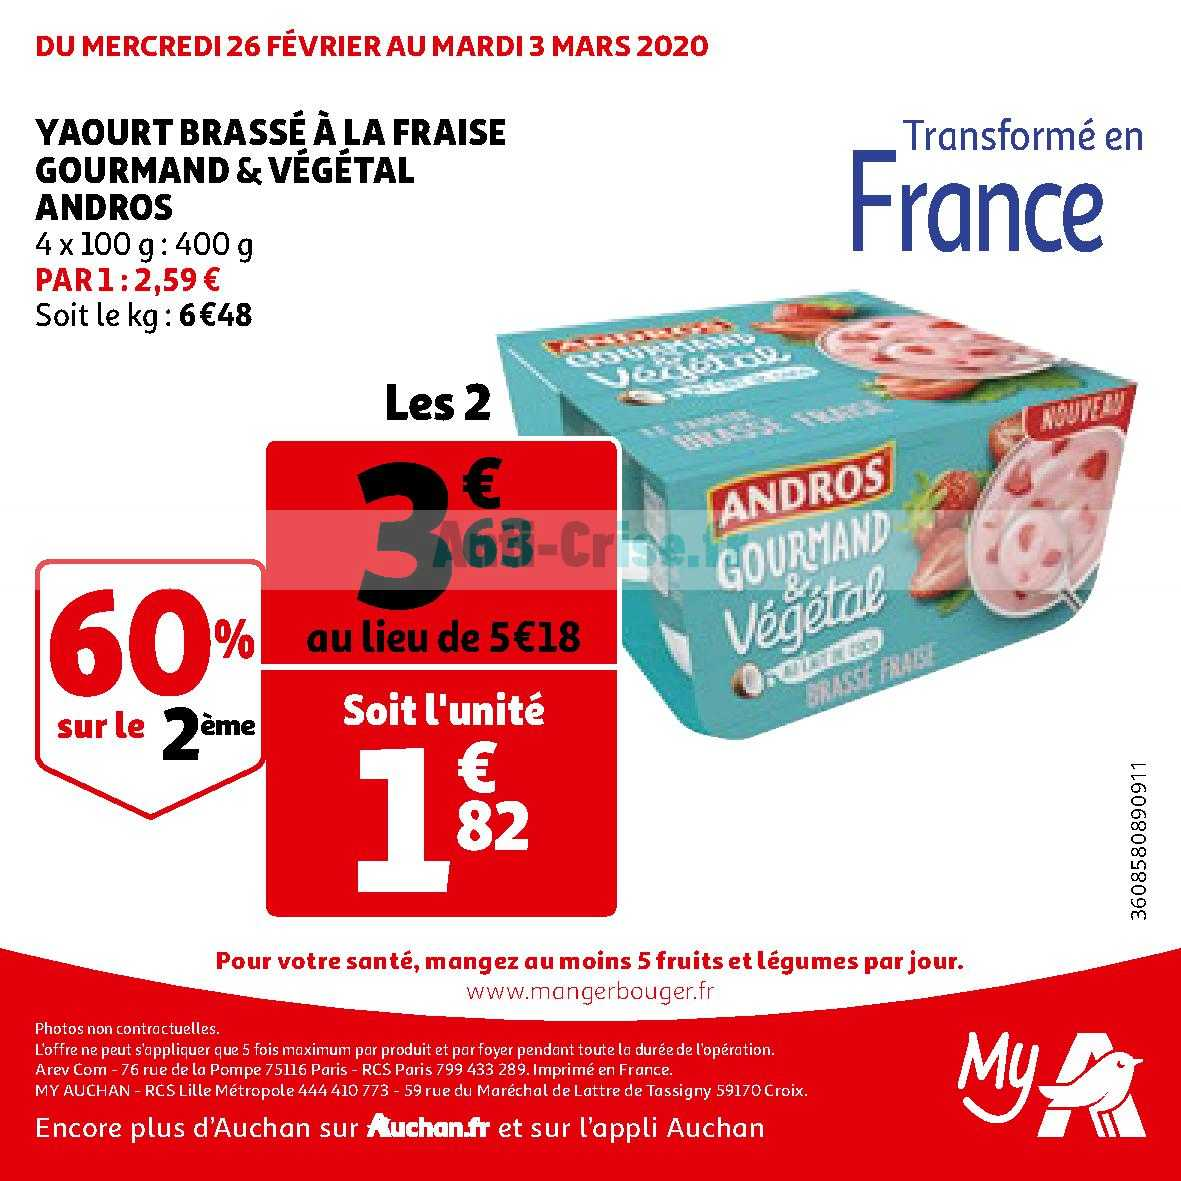 https://media.anti-crise.fr/2020/02/mars2020my-auchan2602202003032020S0C02eme-60-1-300x300.jpg